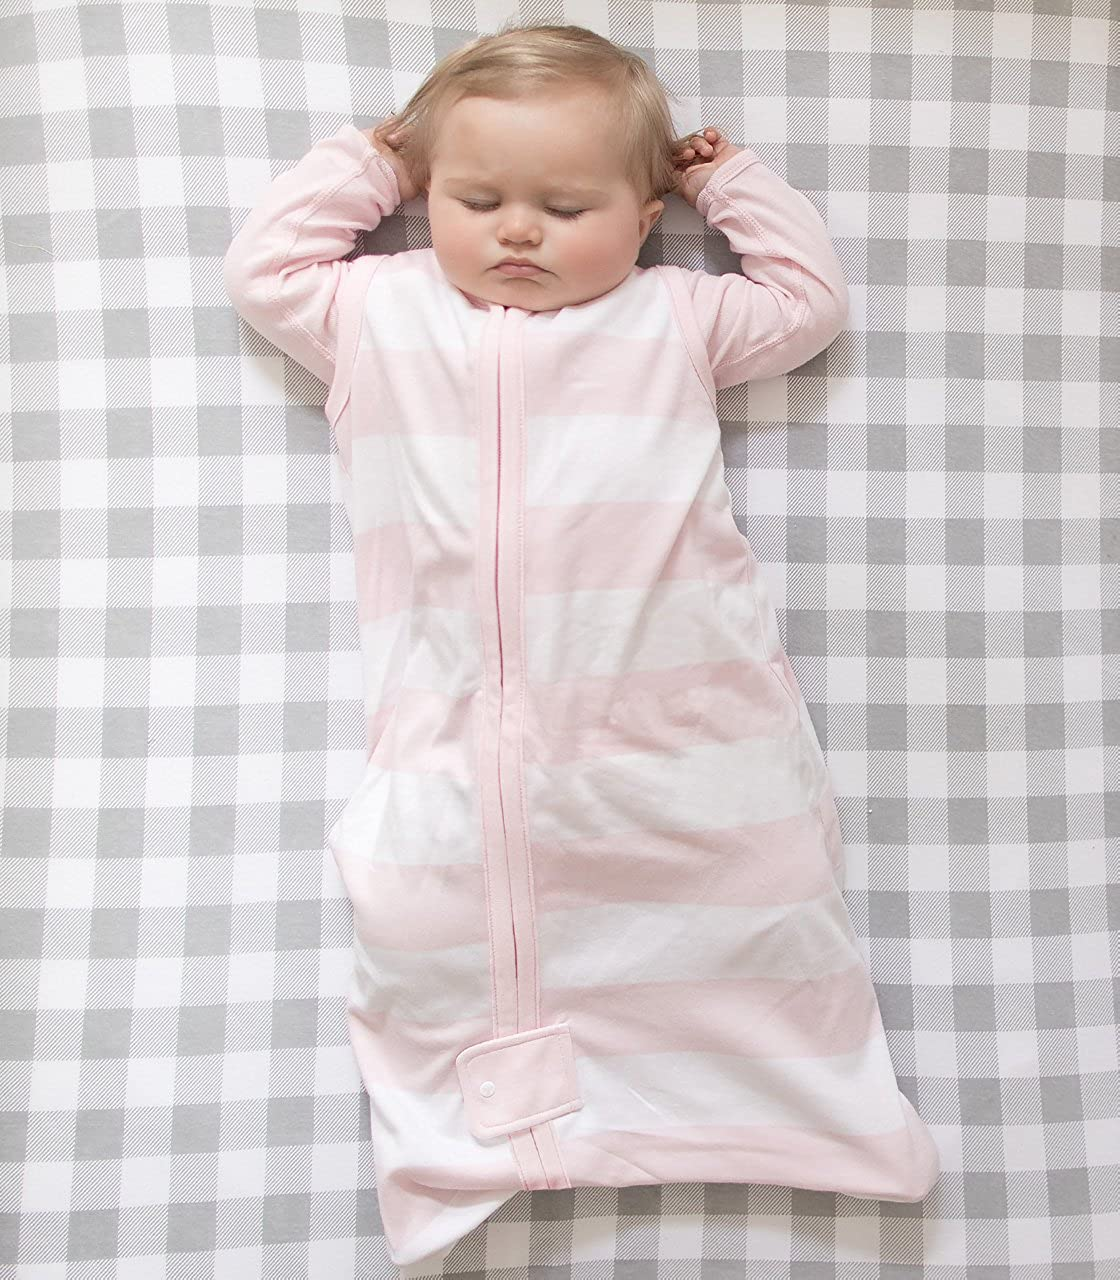 Beekeeper Wearable Blanket Swaddle Transition Sleeping Bag Burt/'s Bees Baby 100/% Organic Cotton Burts Bees Baby